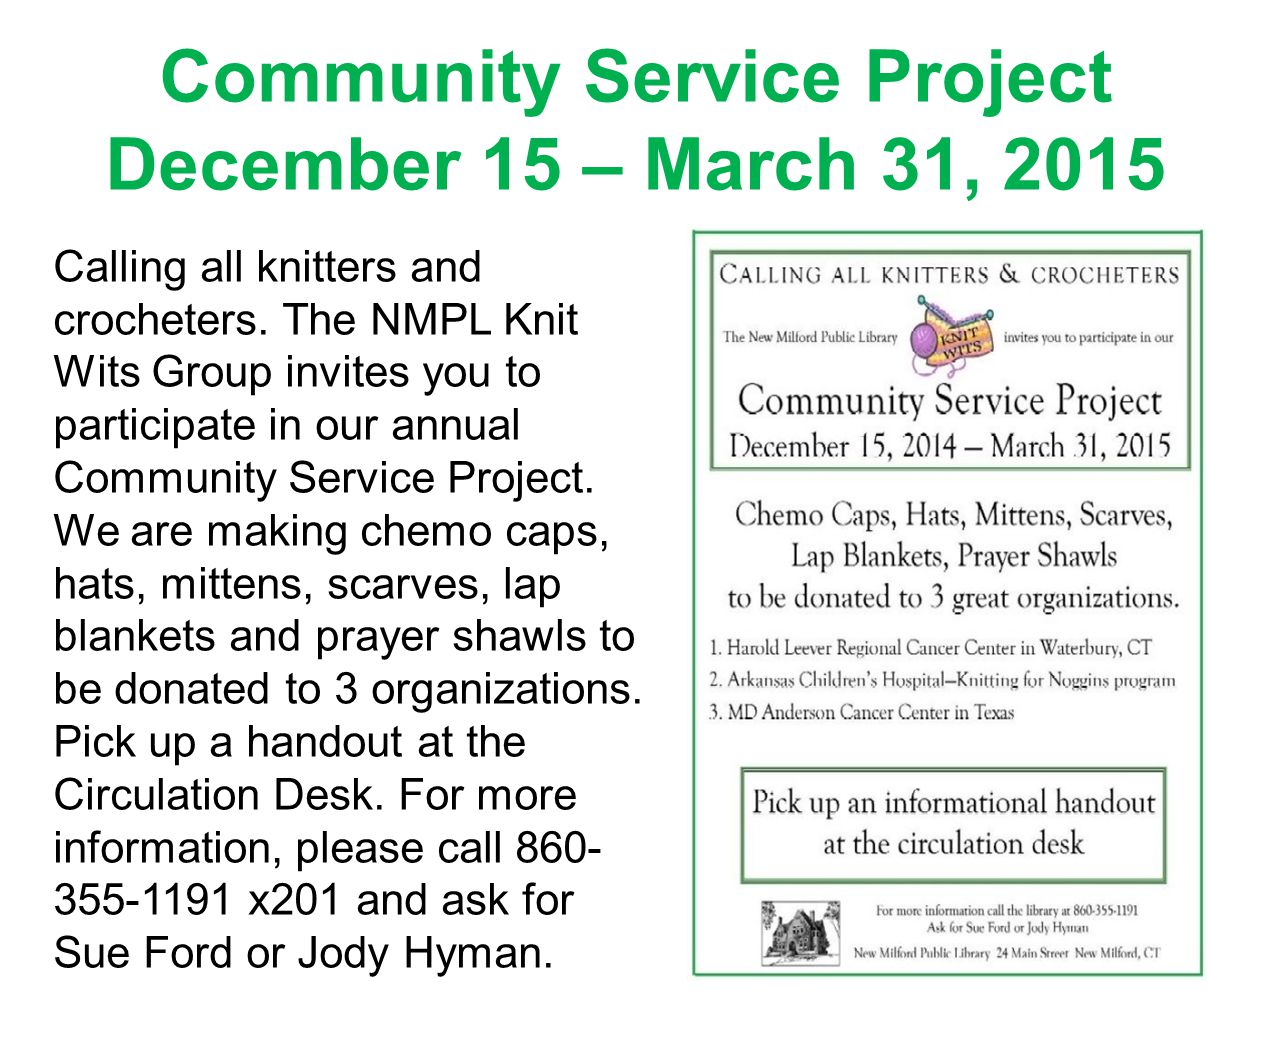 Community Service Project December 15 – March 31, 2015 Calling all knitters and crocheters. The NMPL Knit Wits Group invites you to participate in our